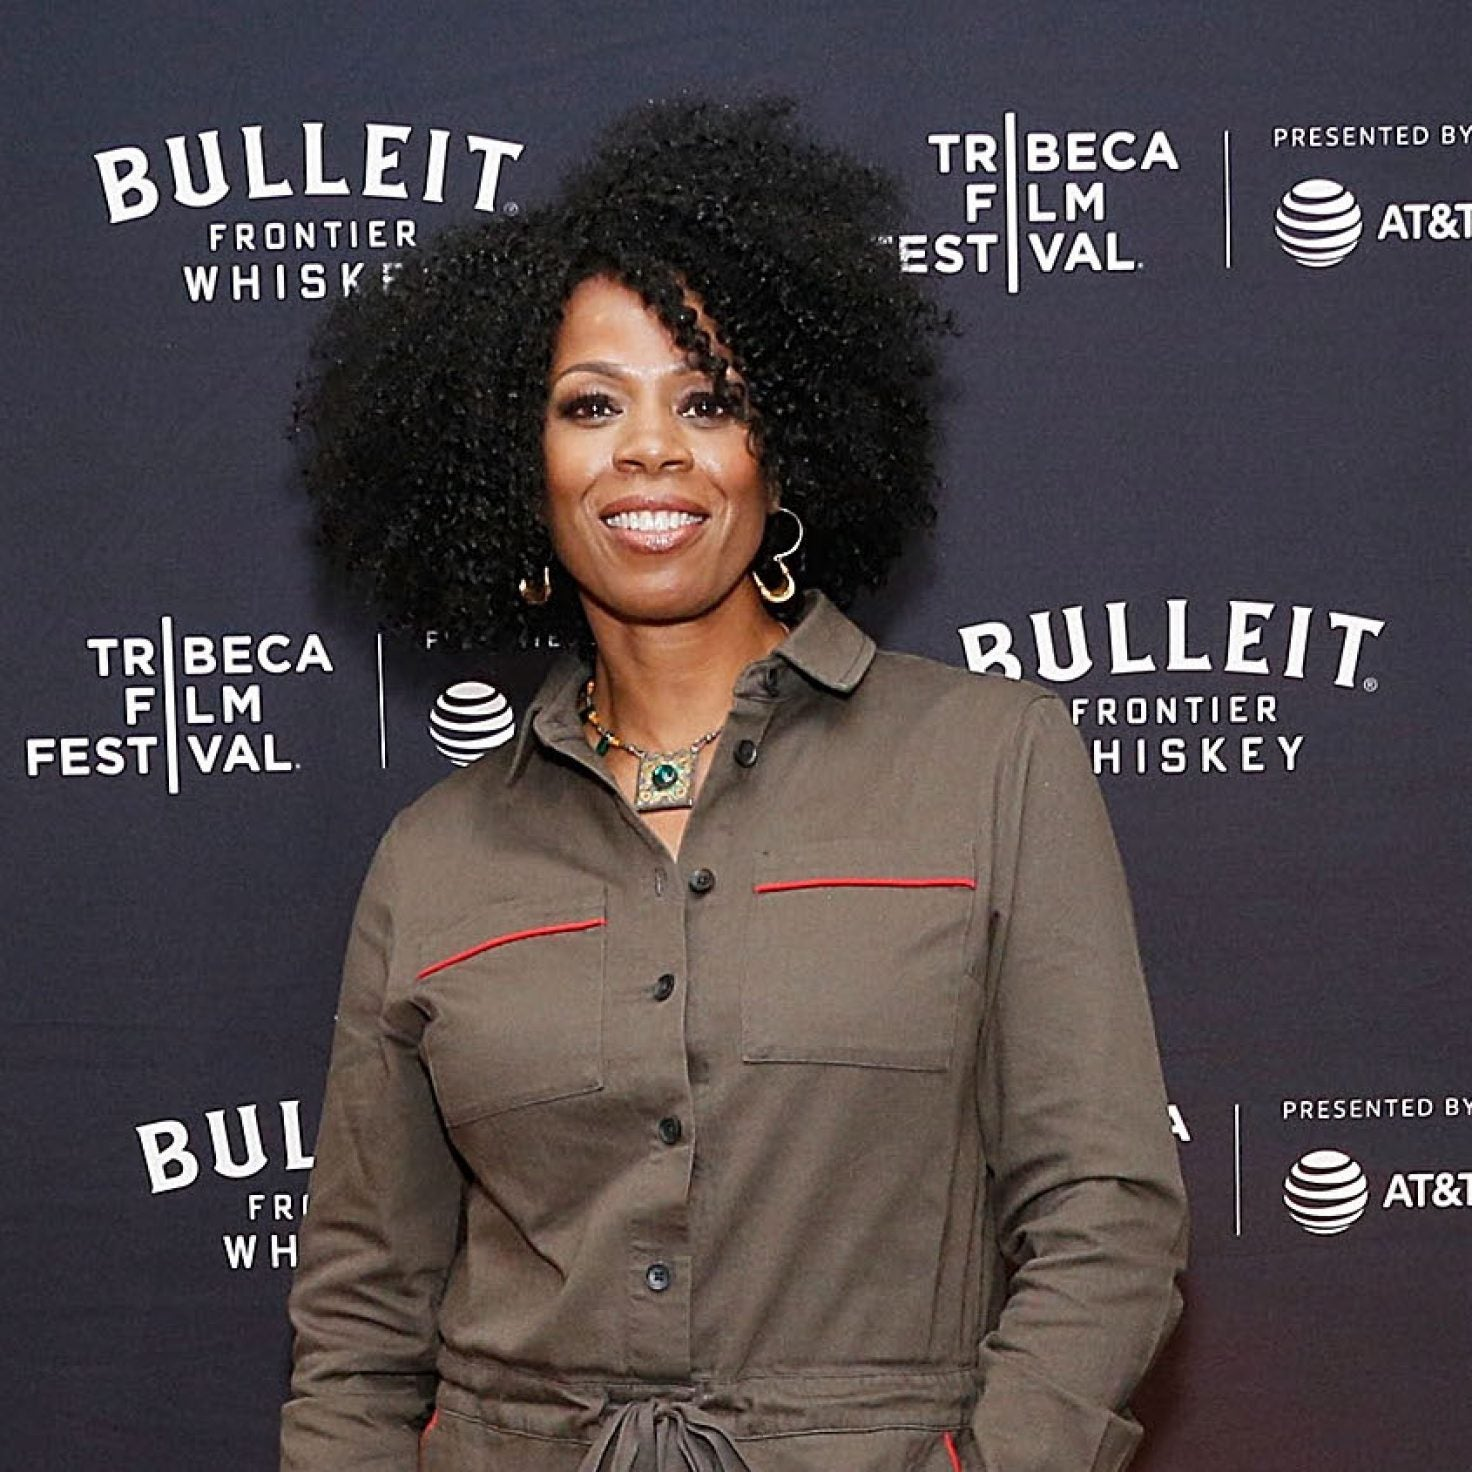 Kim Wayans 'Looked To Her Brothers' Instead Of Trusting Her Own Voice